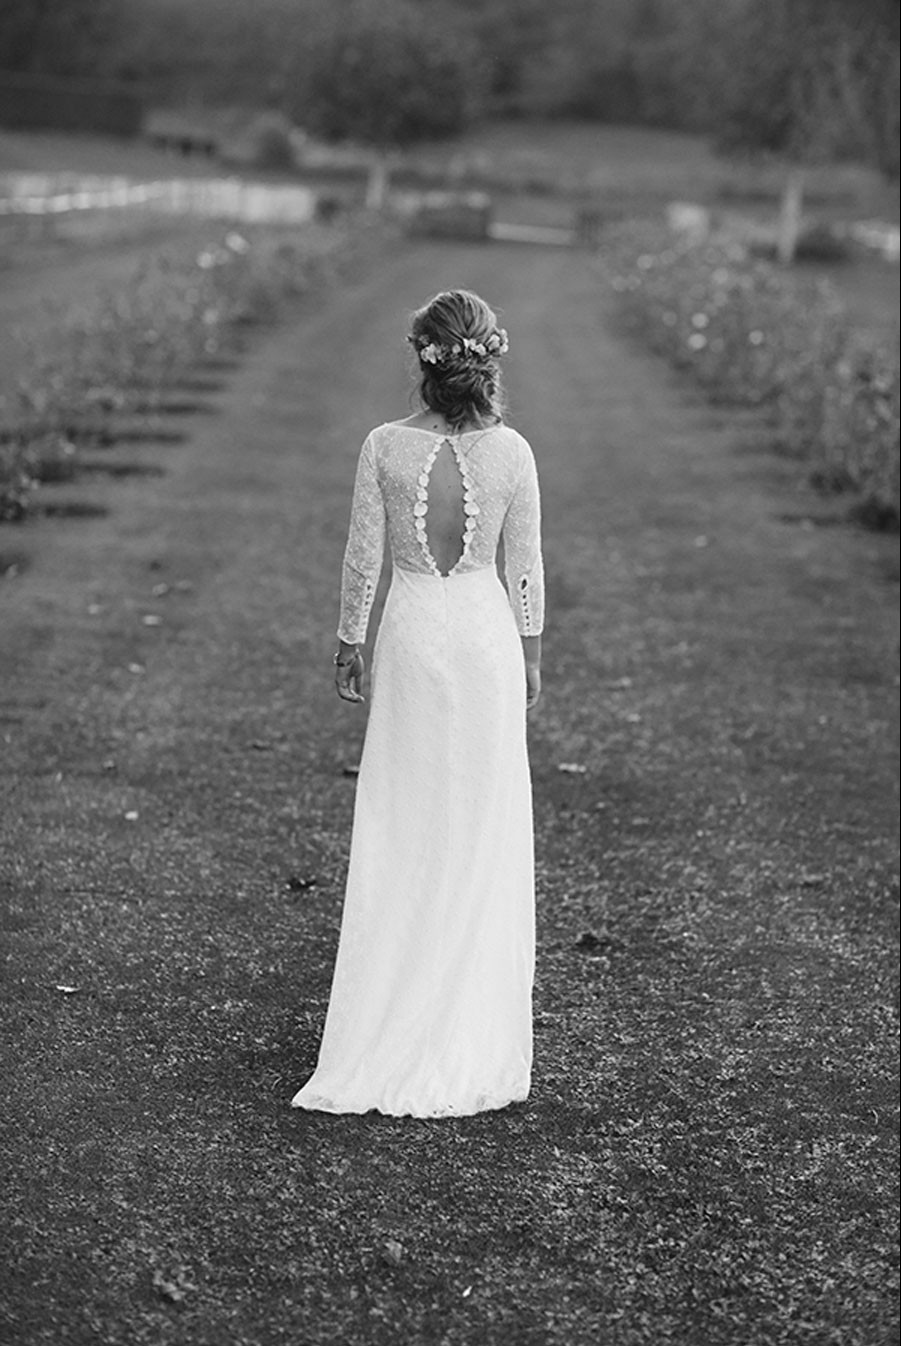 autumnal-boho-wedding-in-basque-country20160928_0543